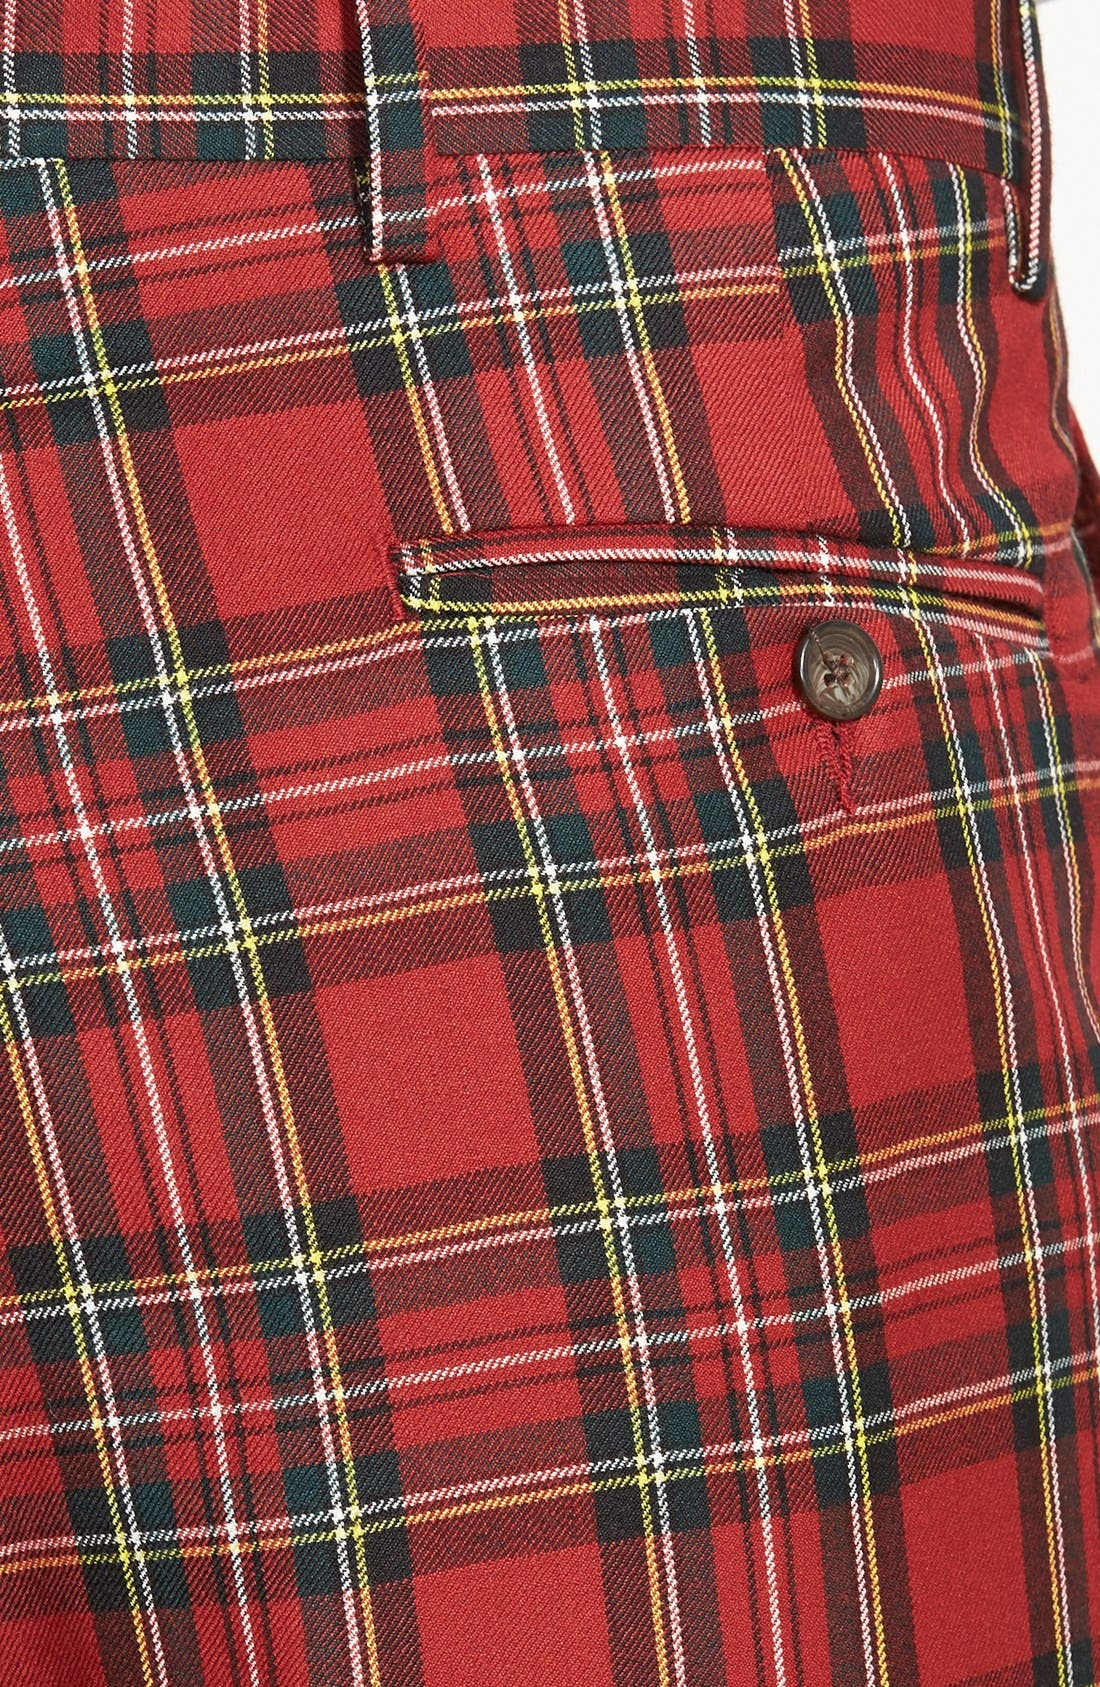 Pleated Plaid Wool Trousers,                             Alternate thumbnail 2, color,                             RED